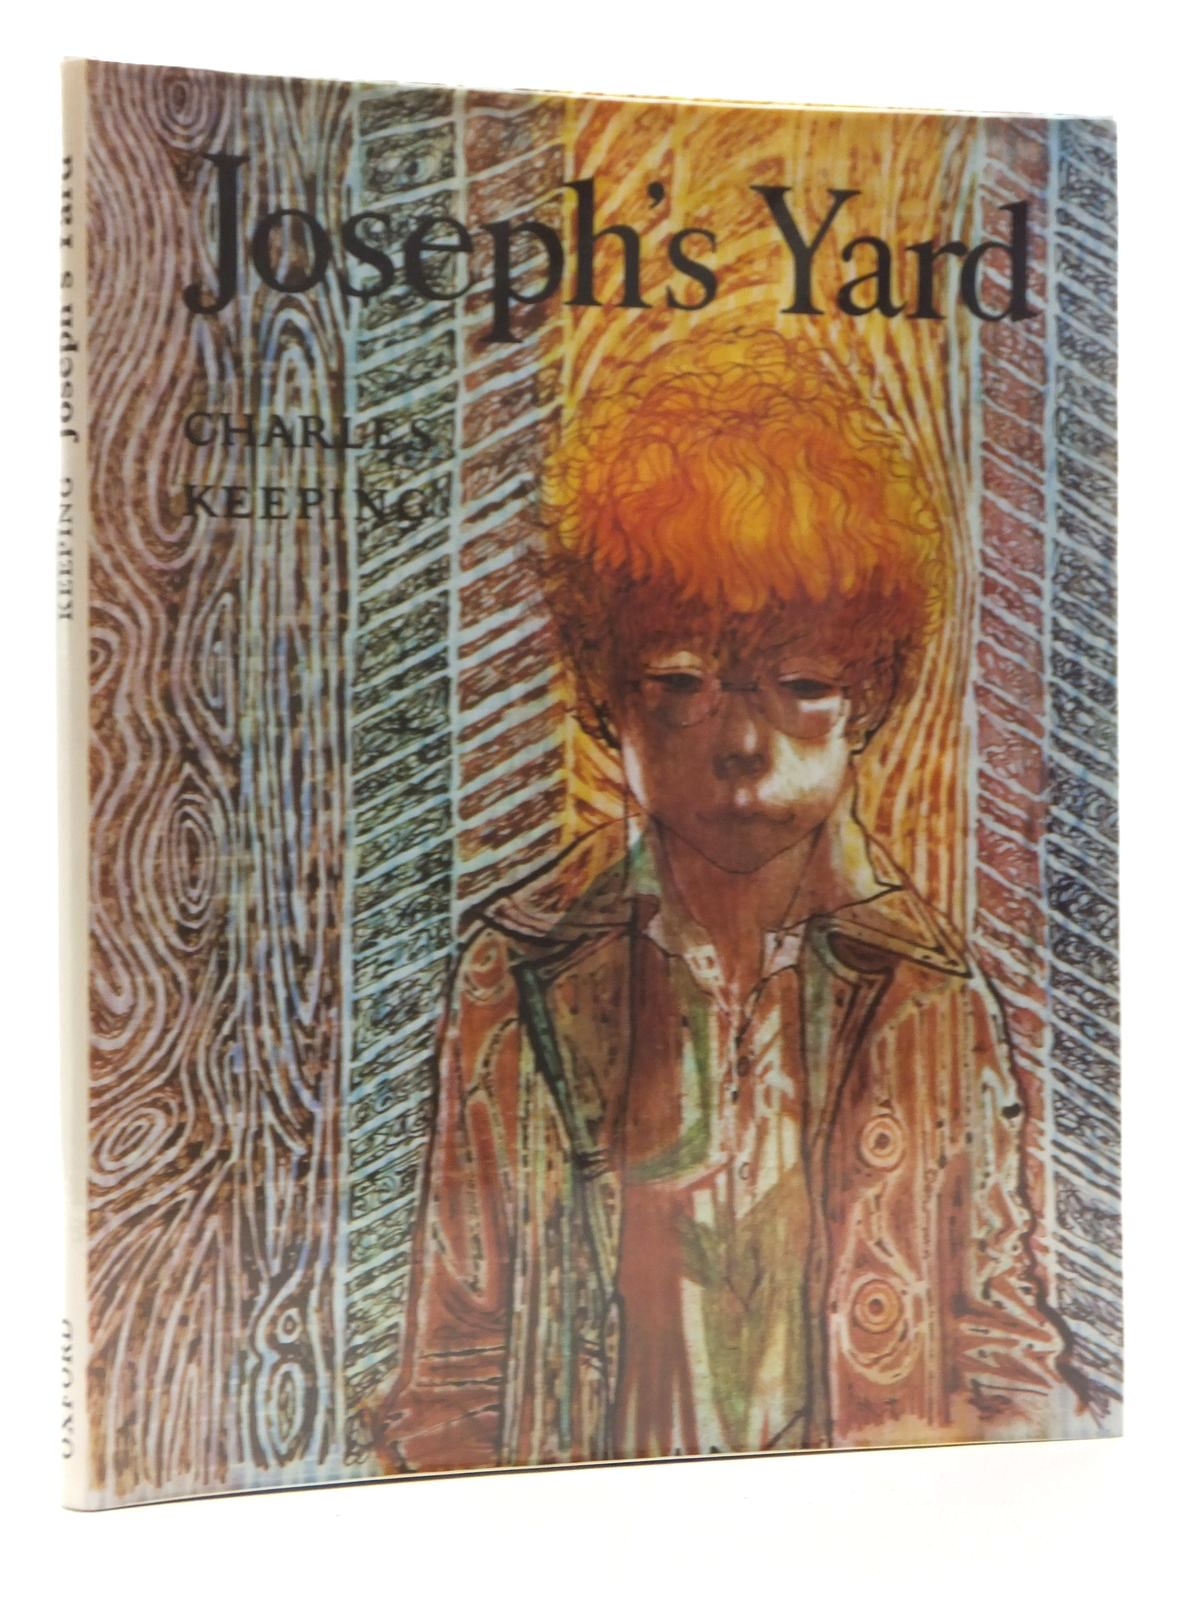 Photo of JOSEPH'S YARD written by Keeping, Charles illustrated by Keeping, Charles published by Oxford University Press (STOCK CODE: 1317028)  for sale by Stella & Rose's Books